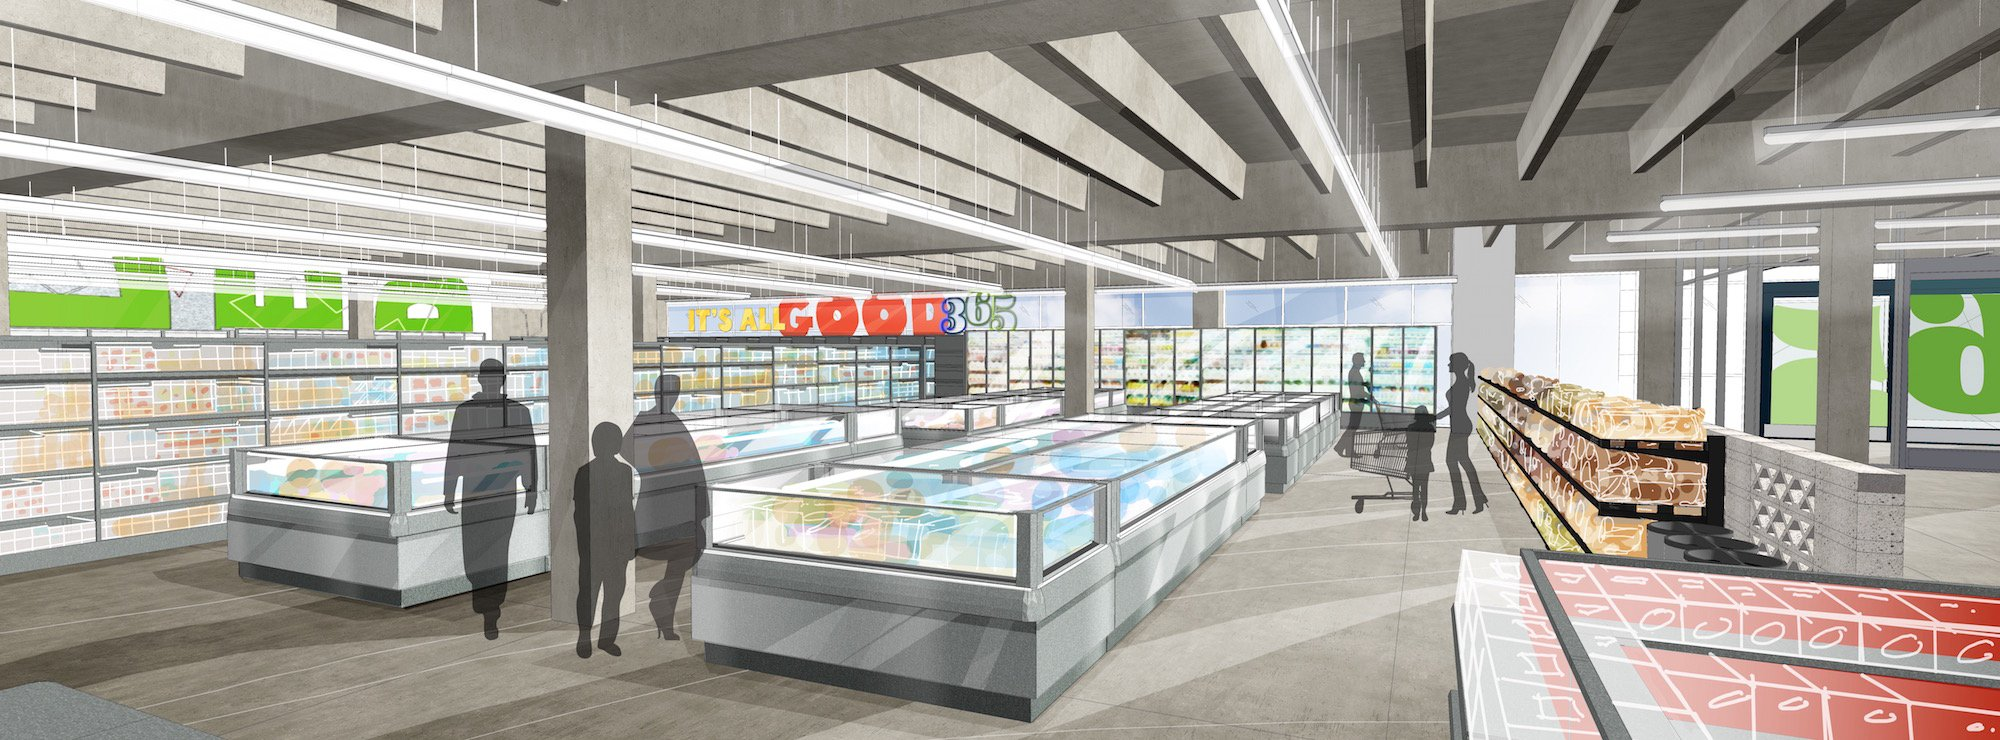 Rendering of inside a 365 Whole Foods store.